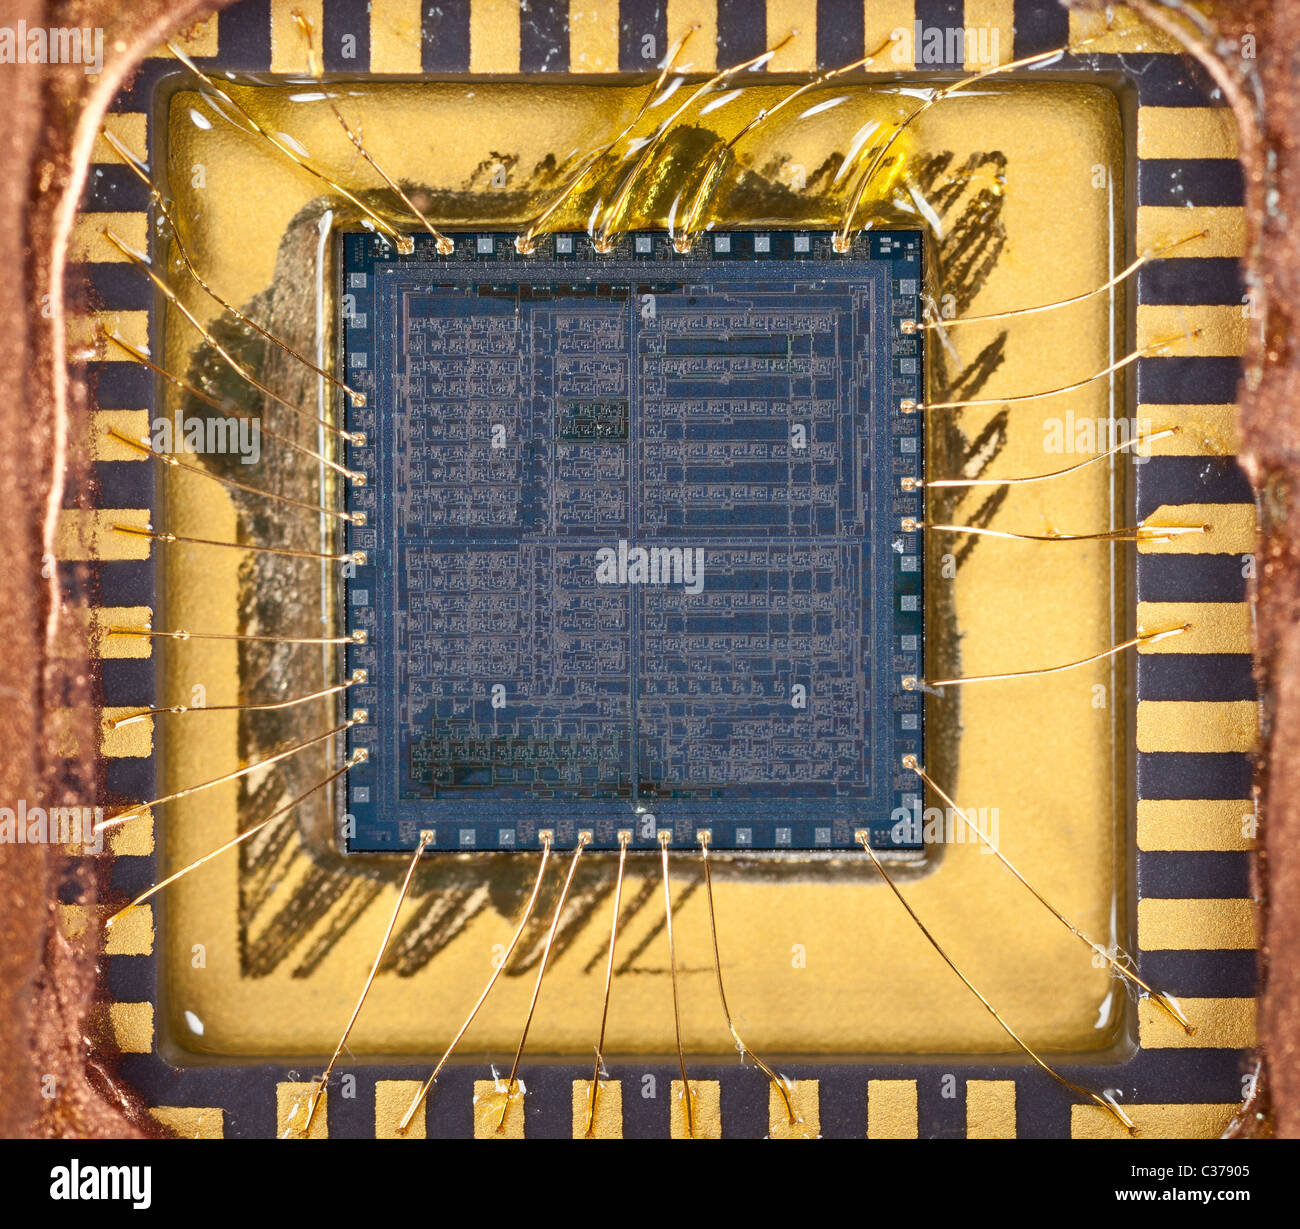 semiconductors the silicon chip Silicon chip - electronic equipment consisting of a small crystal of a silicon semiconductor fabricated to carry out a number of electronic functions in an integrated circuit micro chip , microchip , microprocessor chip , chip.